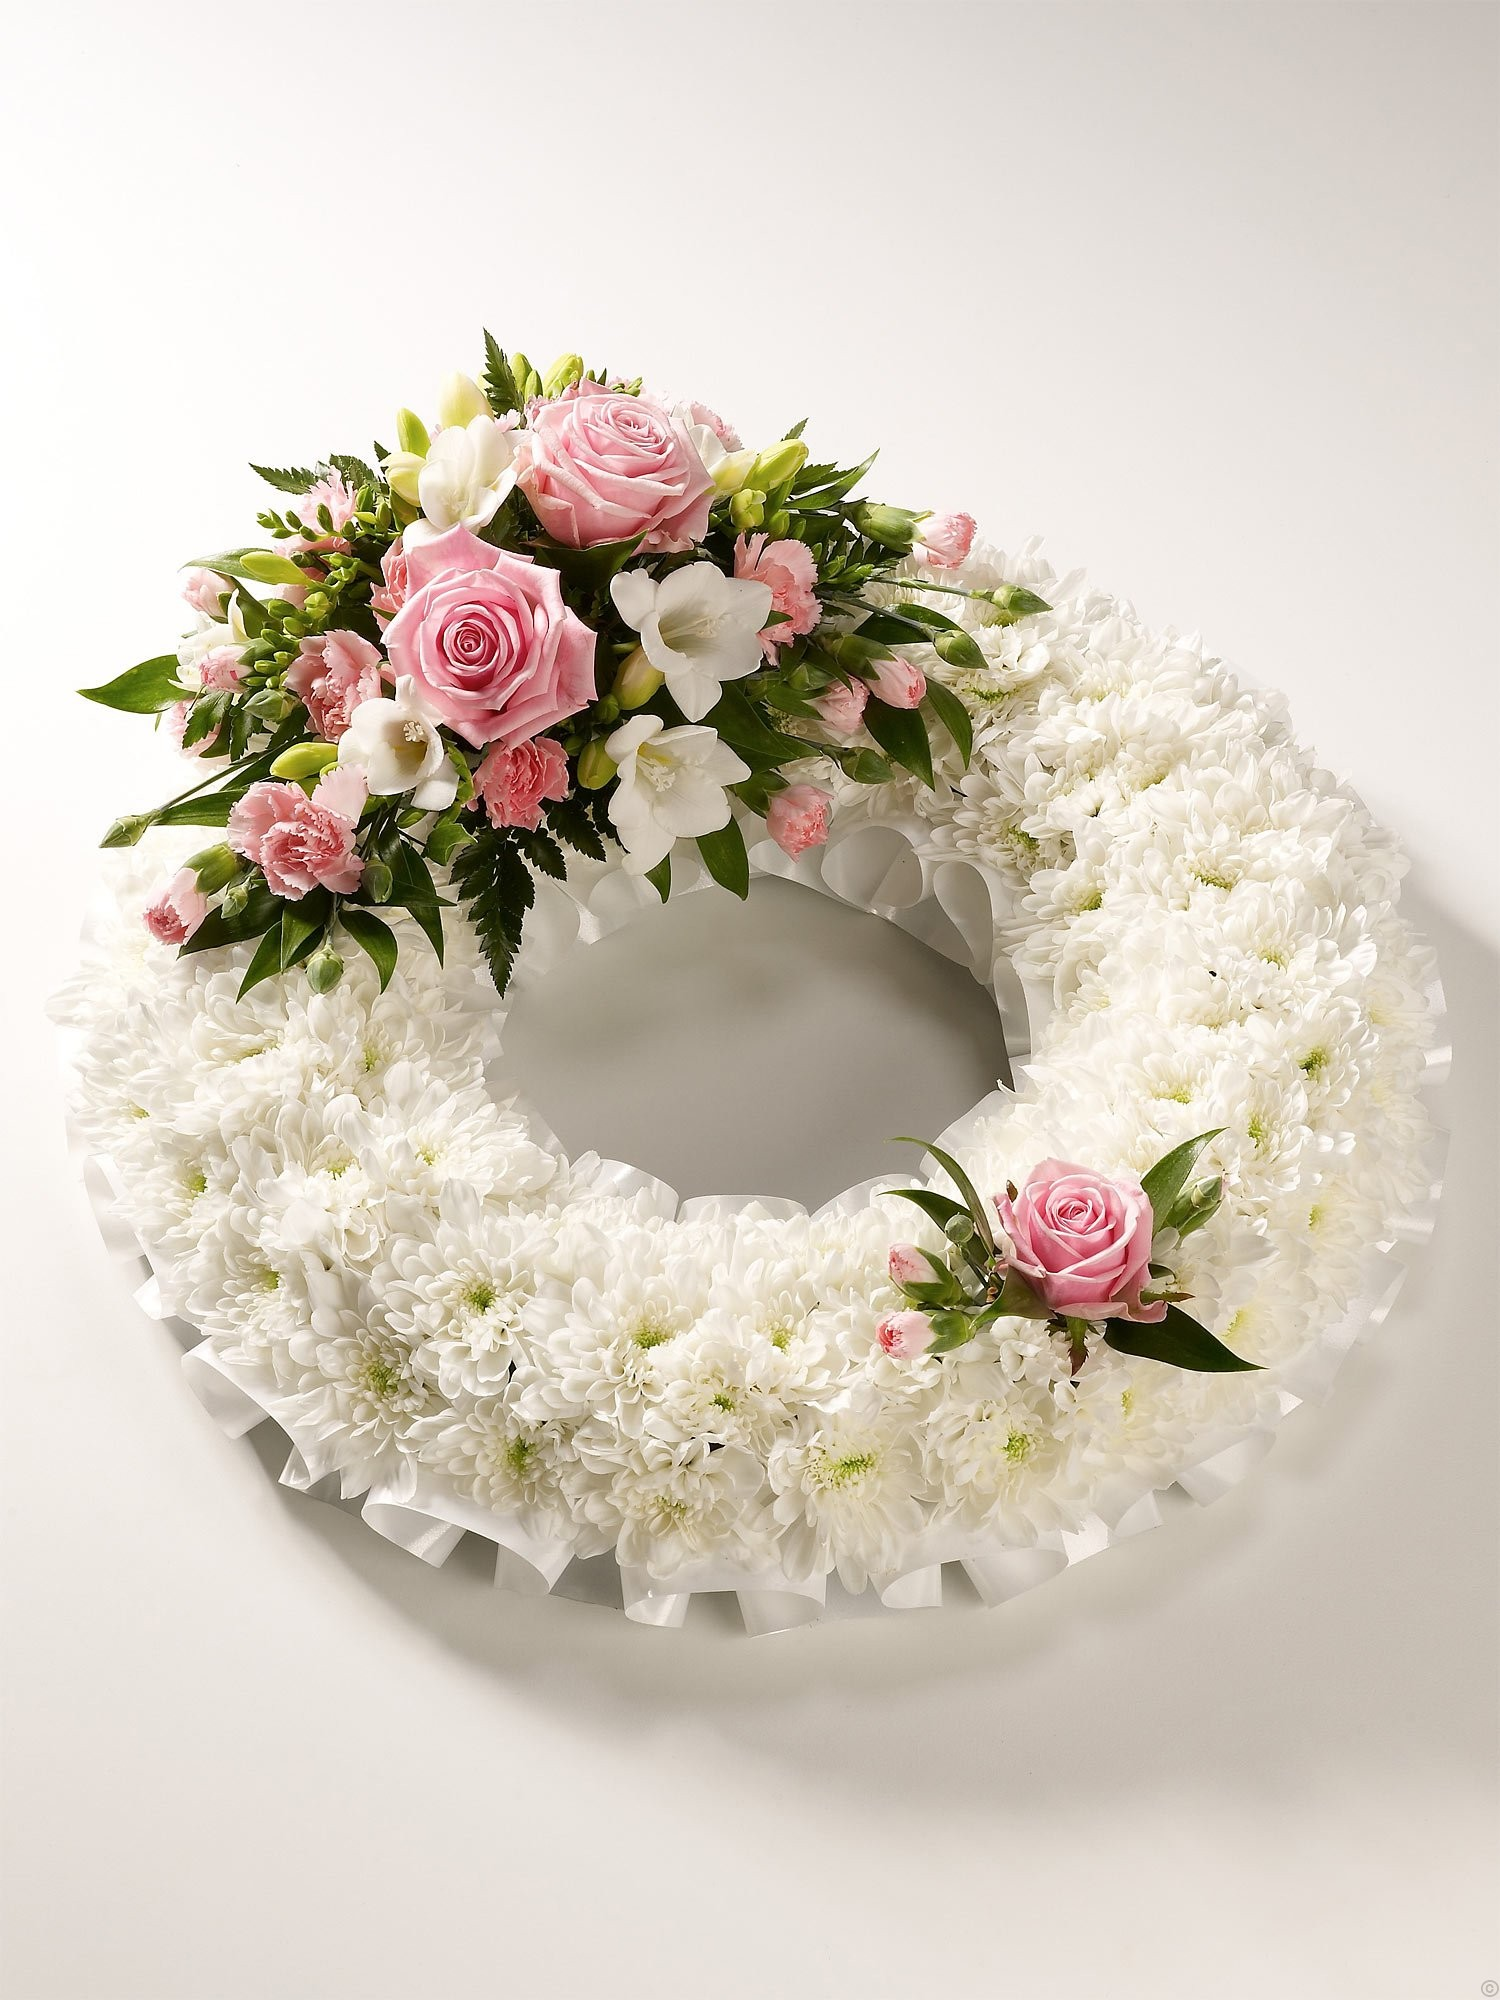 Based Wreath in pink and white